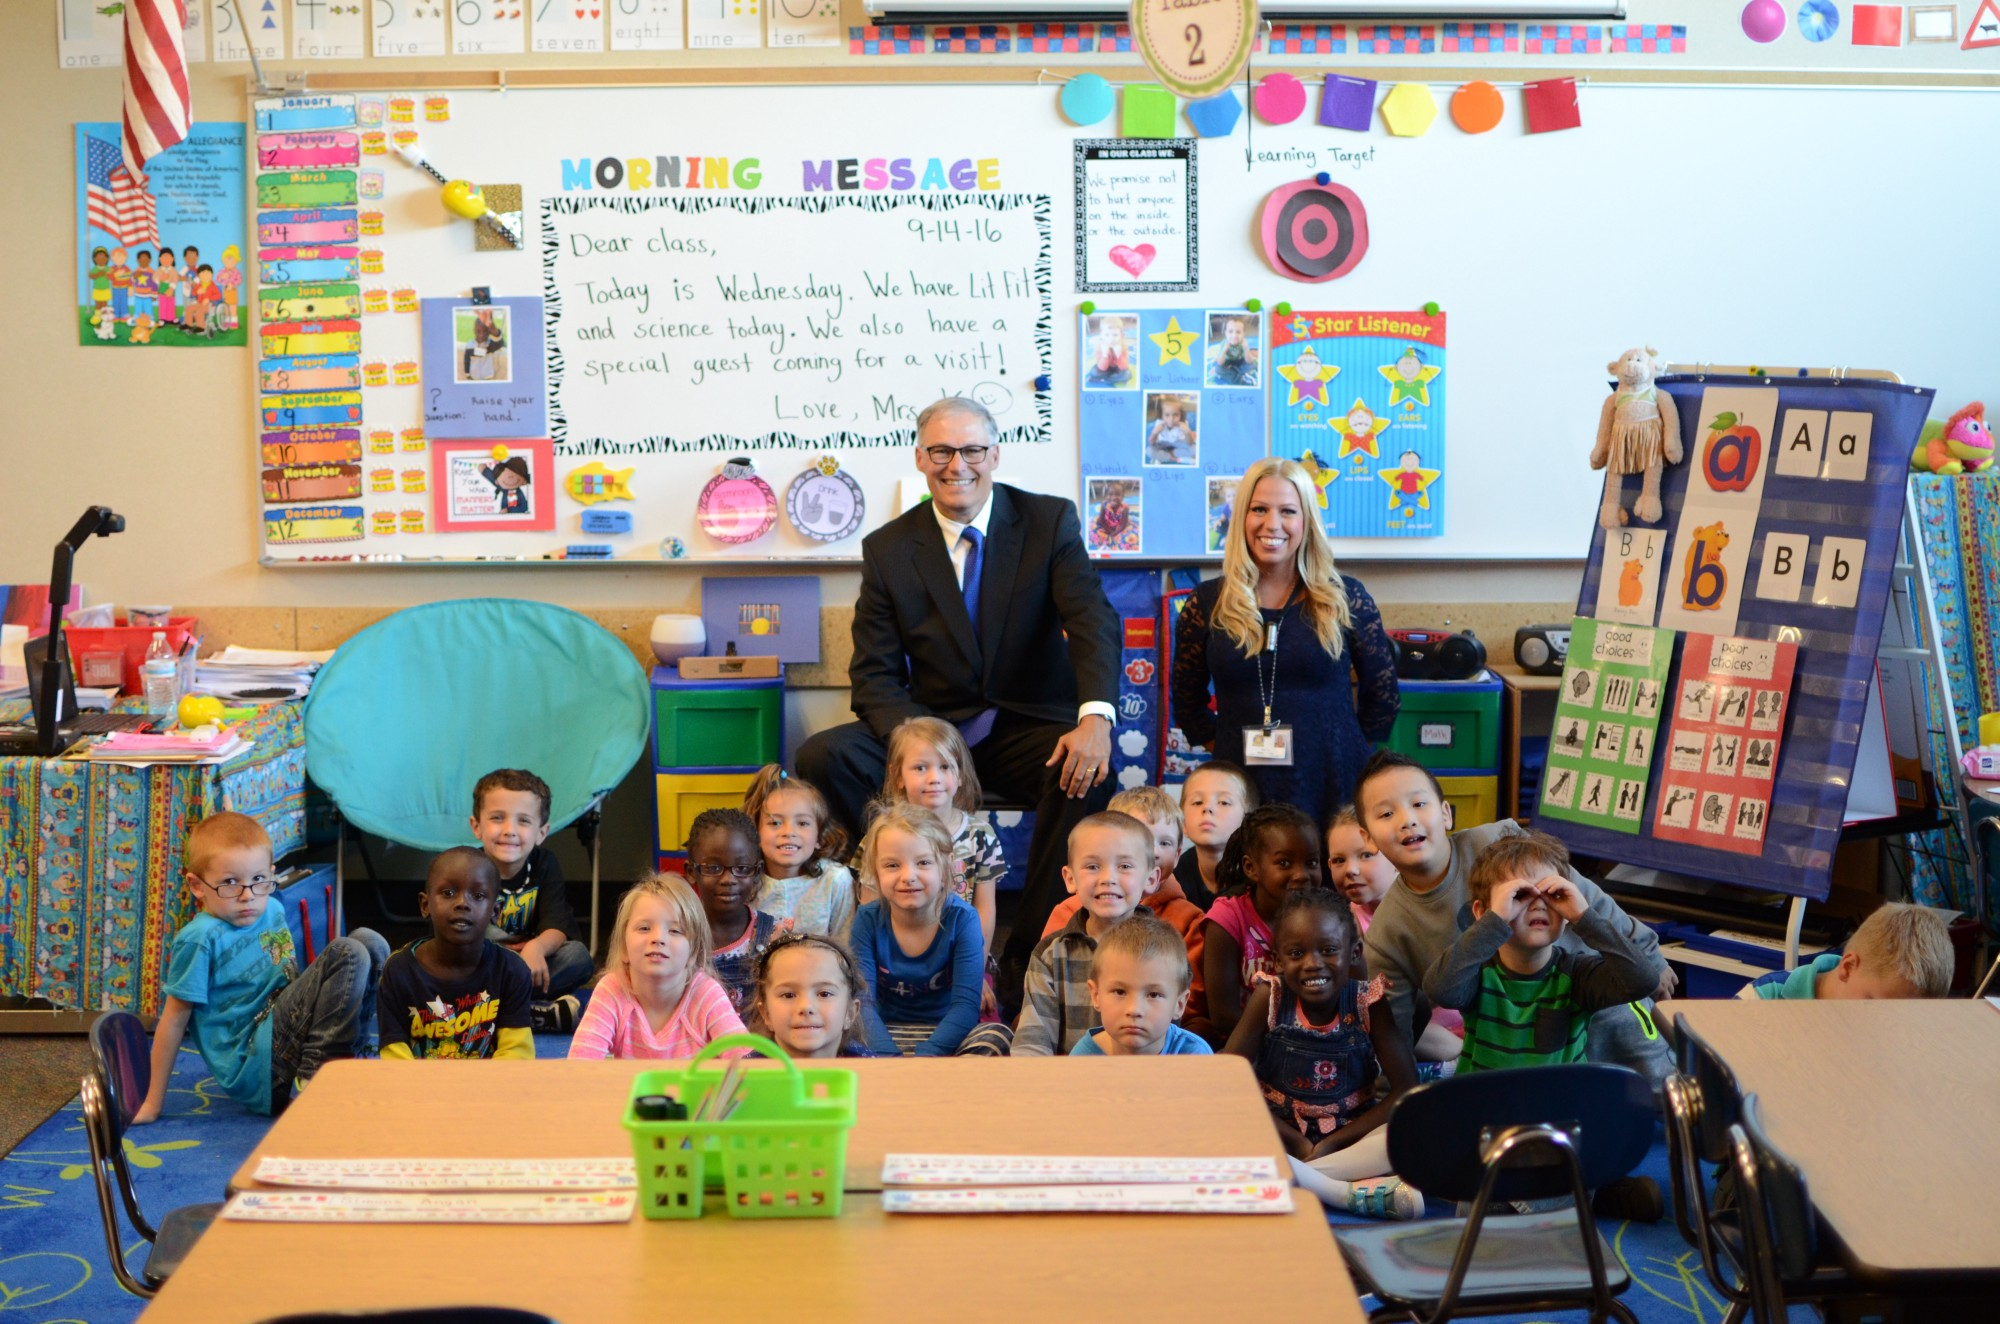 Washington state government for kids - Gov Inslee With Kindergarten Students And Teacher Brandi Johnson Kaplicky At Lincoln Heights Elementary In Spokane Wash Sep